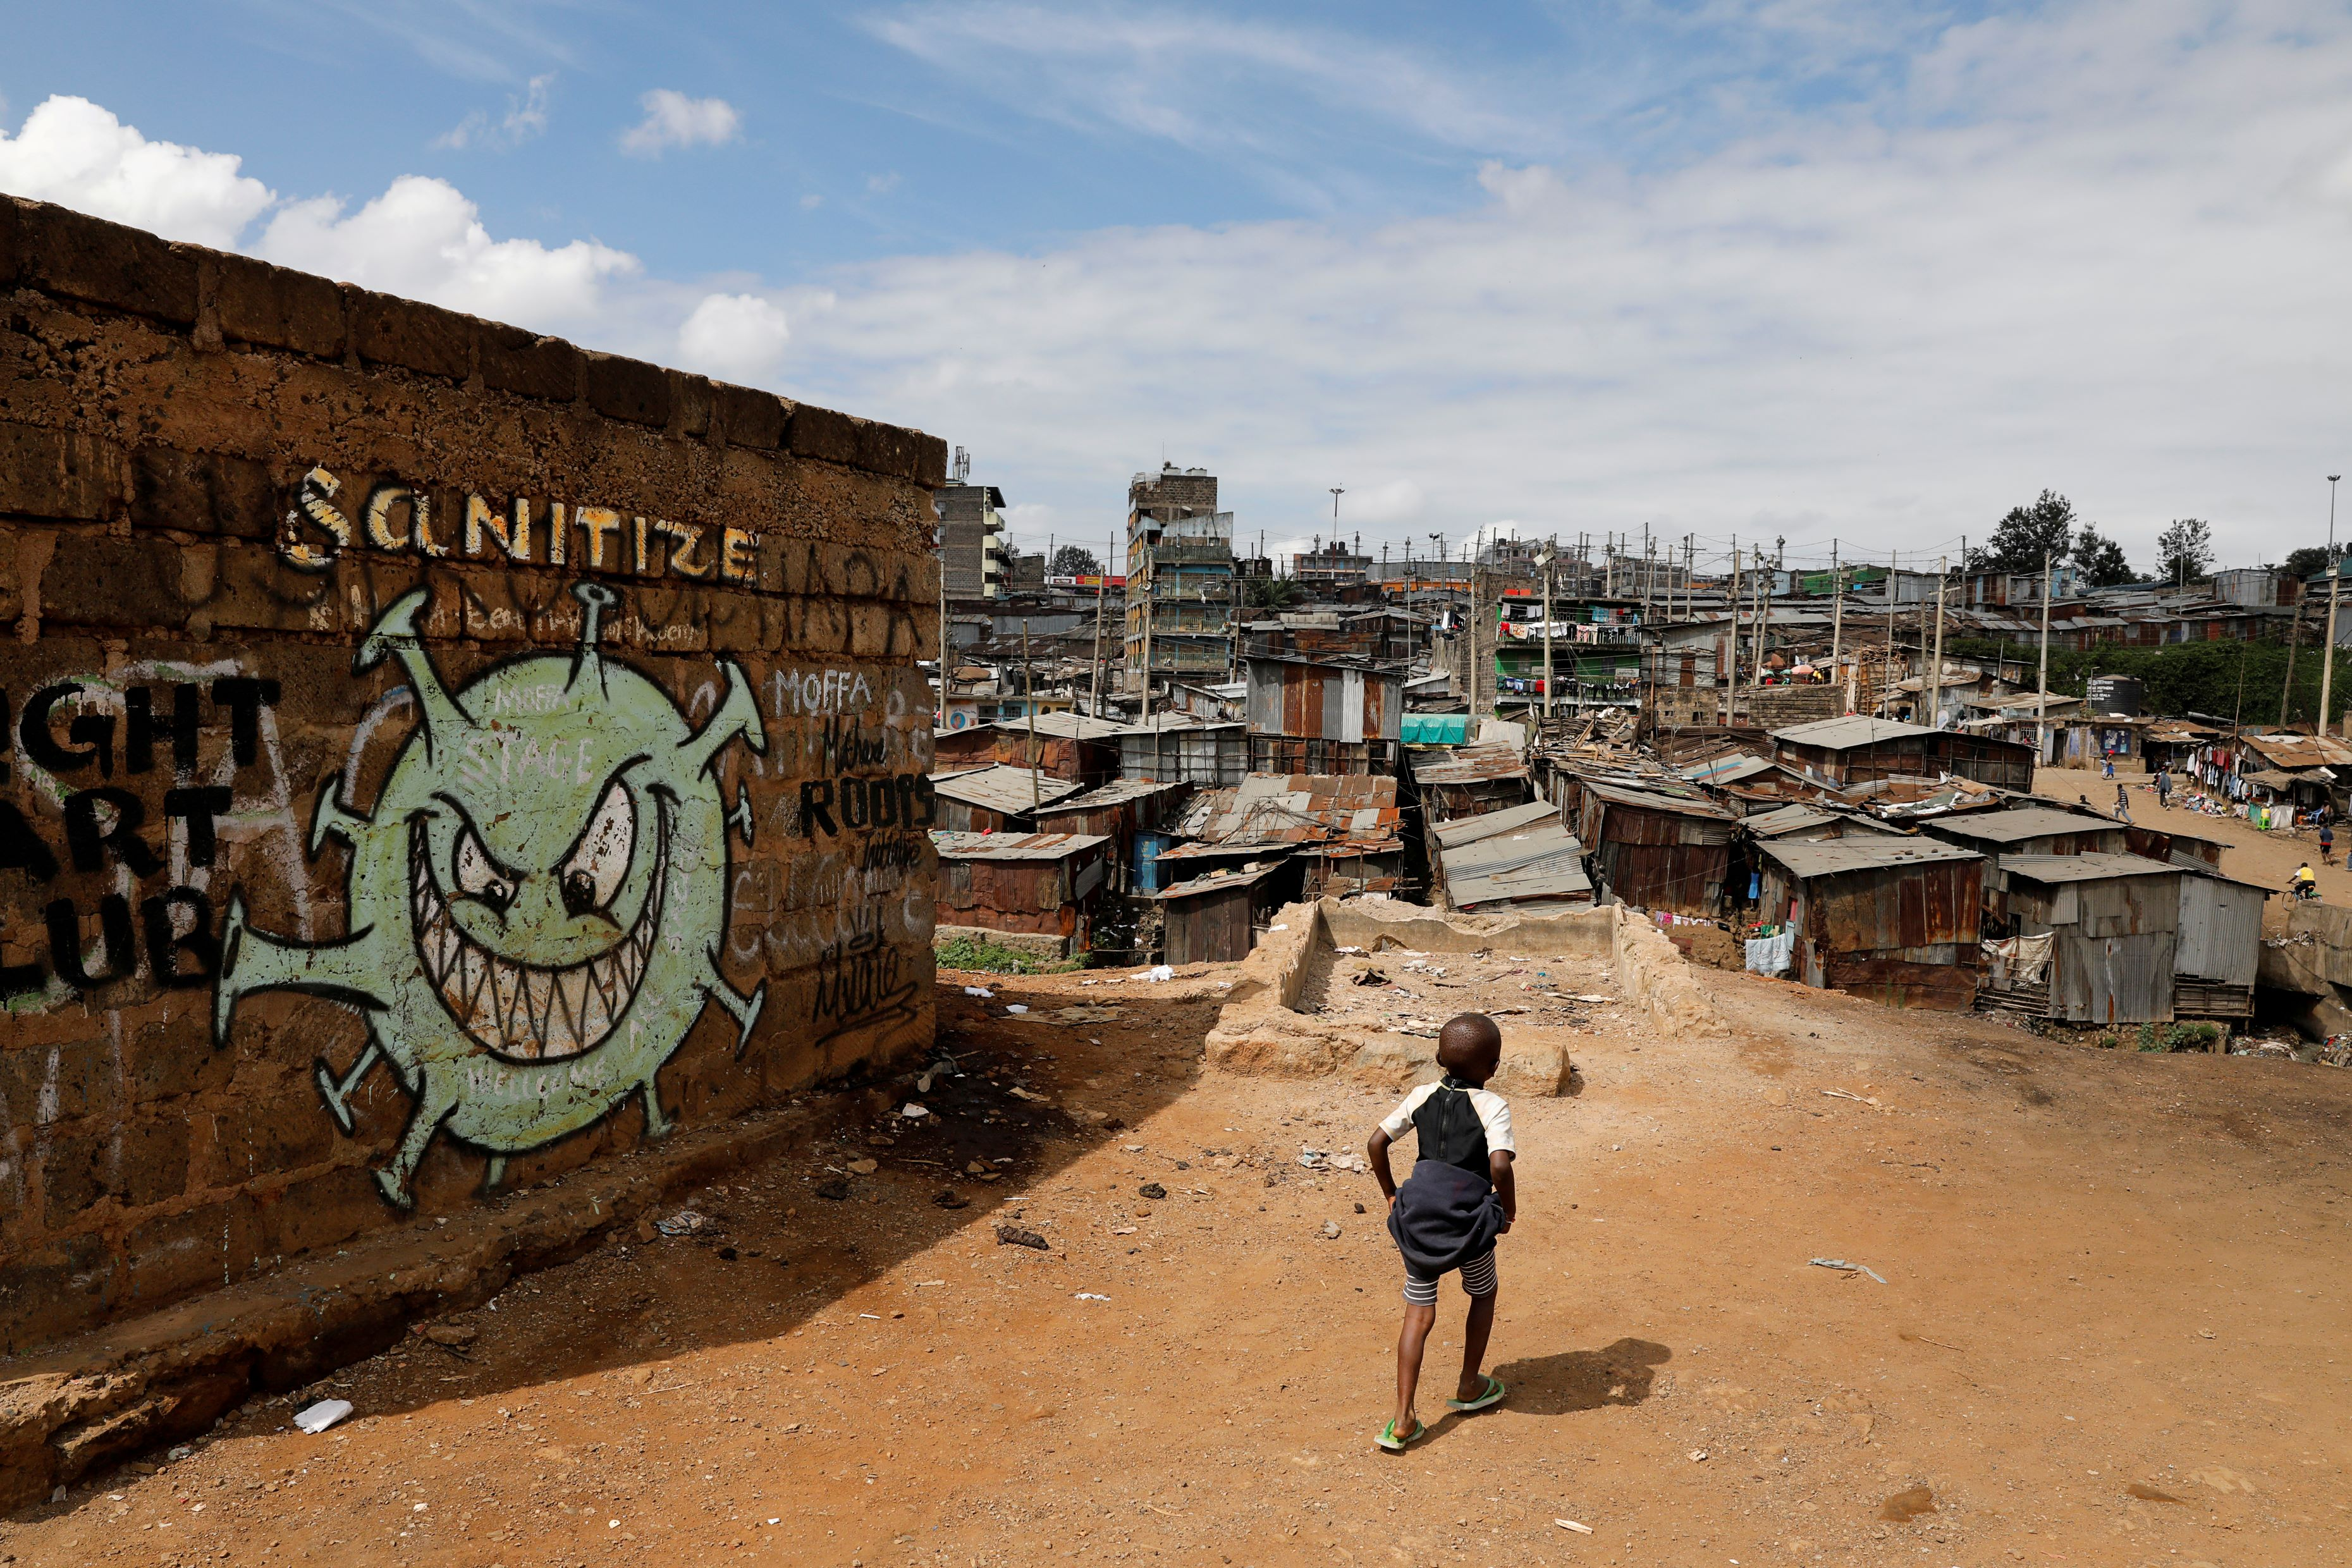 A boy walks in front of a graffiti promoting the fight against the coronavirus disease (COVID-19) in the Mathare slums of Nairobi, Kenya, May 22, 2020. REUTERS/Baz Ratner TPX IMAGES OF THE DAY